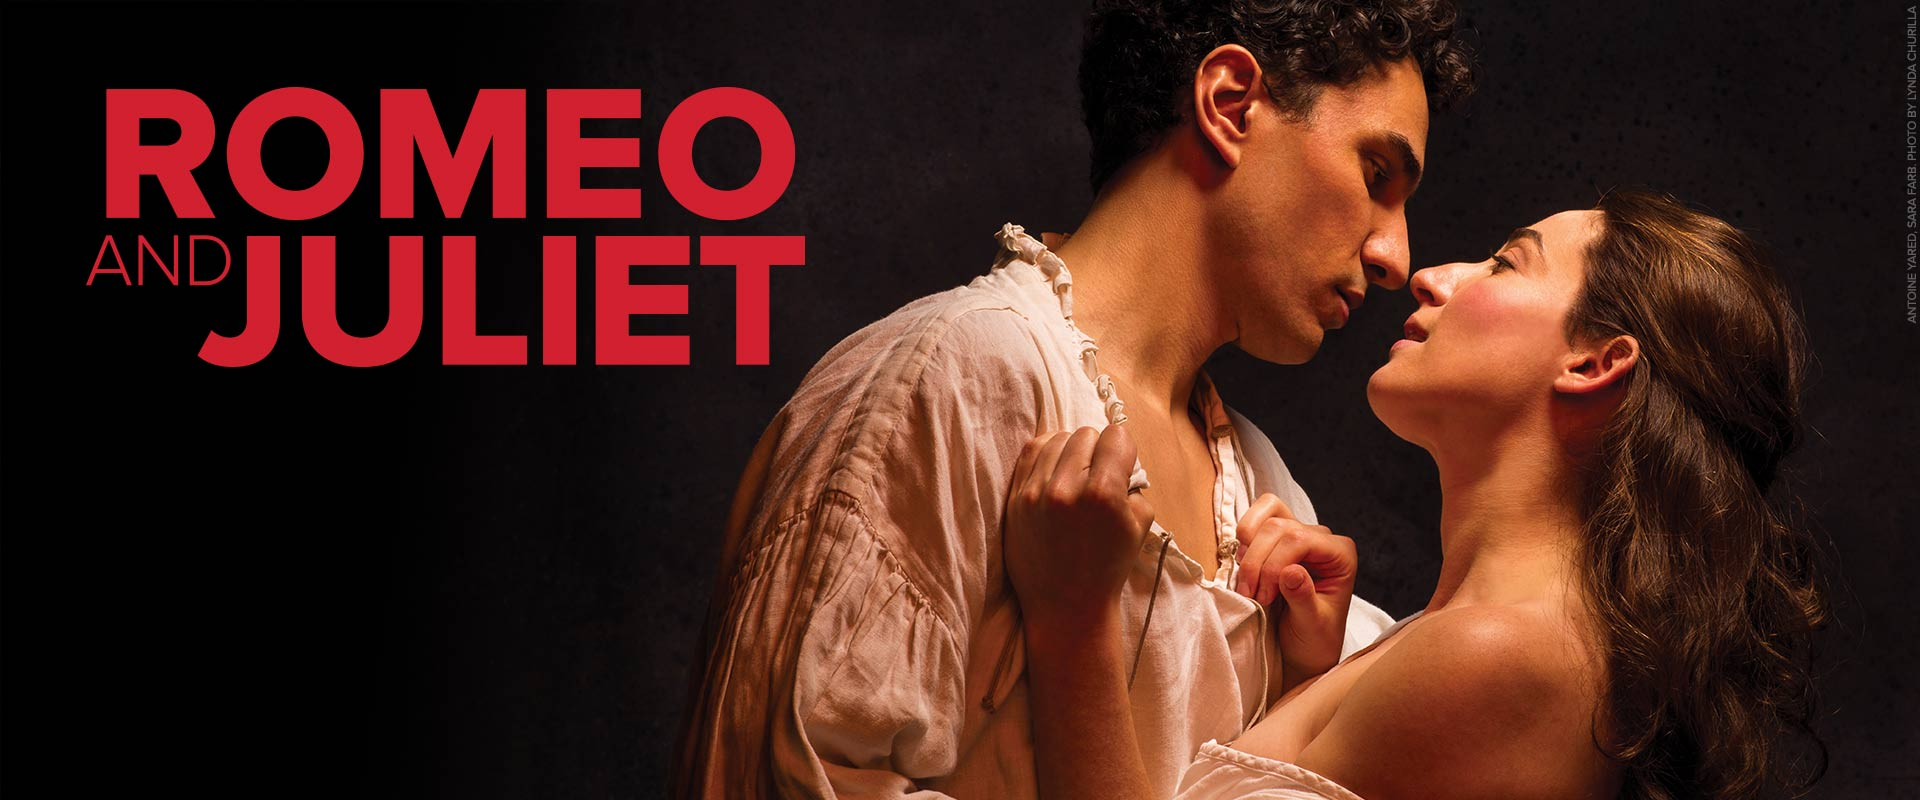 Publicity image from Romeo and Juliet featuring Antoine Yared and Sara Farb